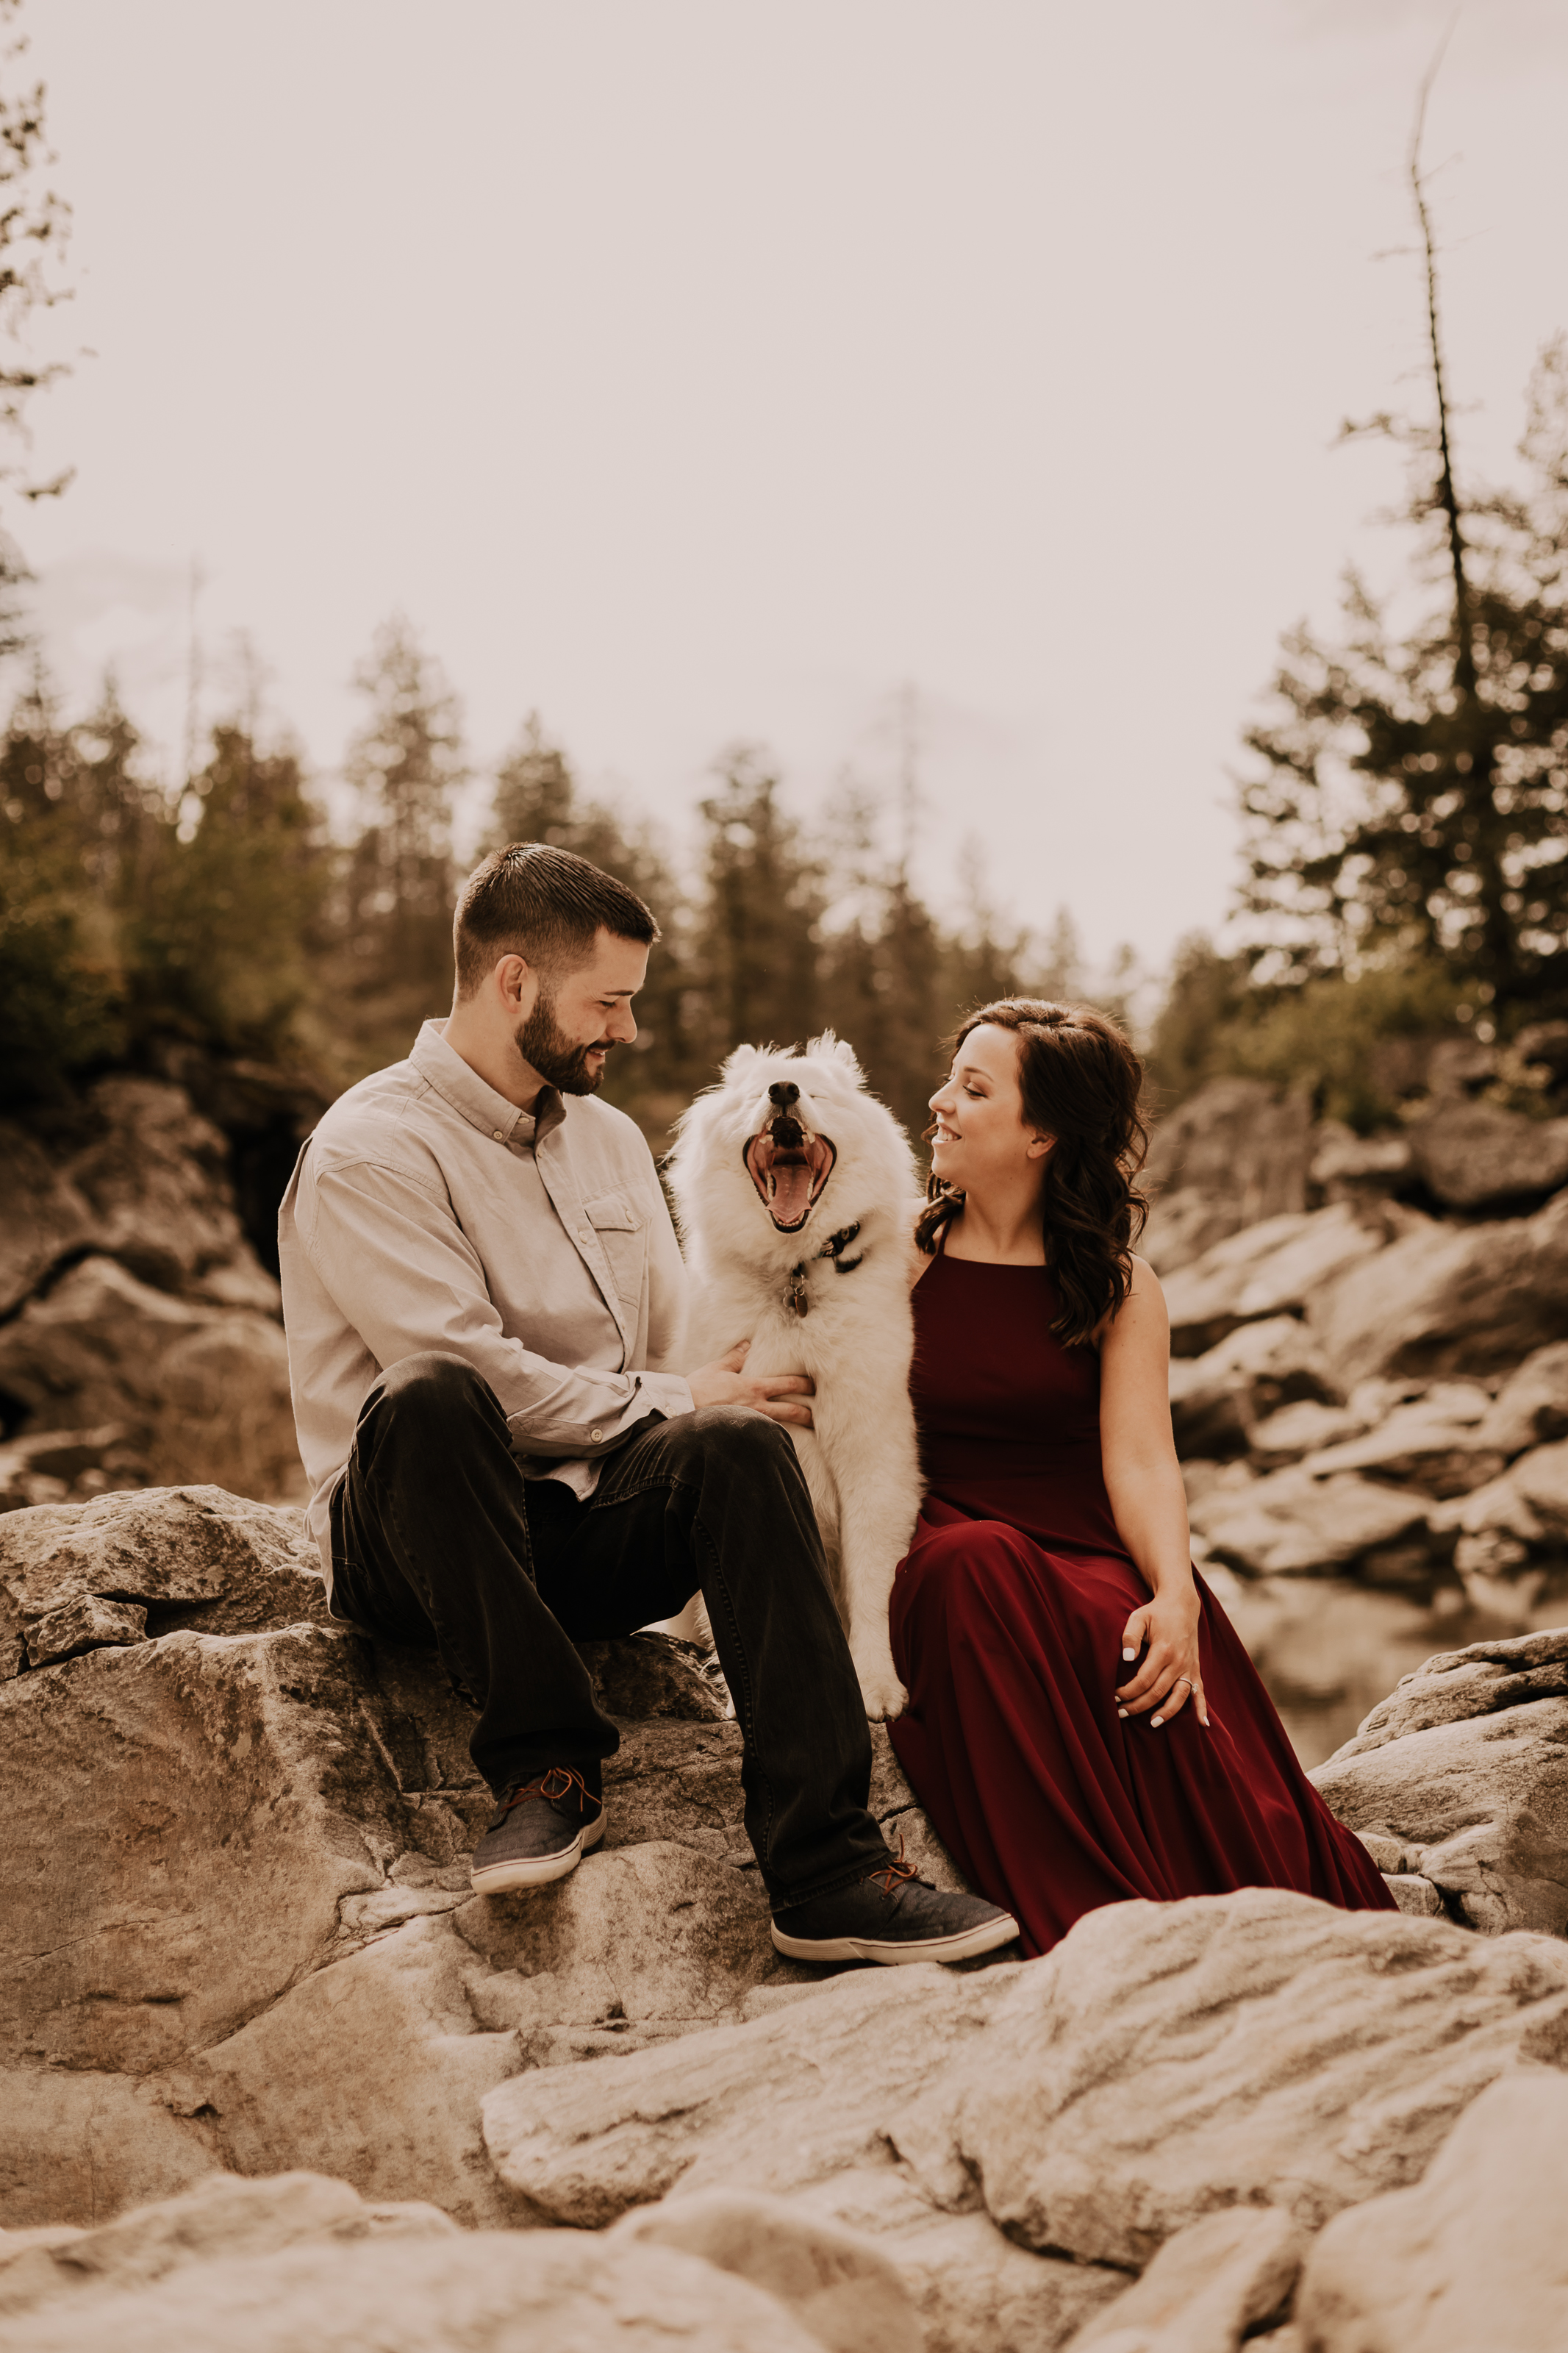 PostFallsRockyMountainEngagement-5891.jpg